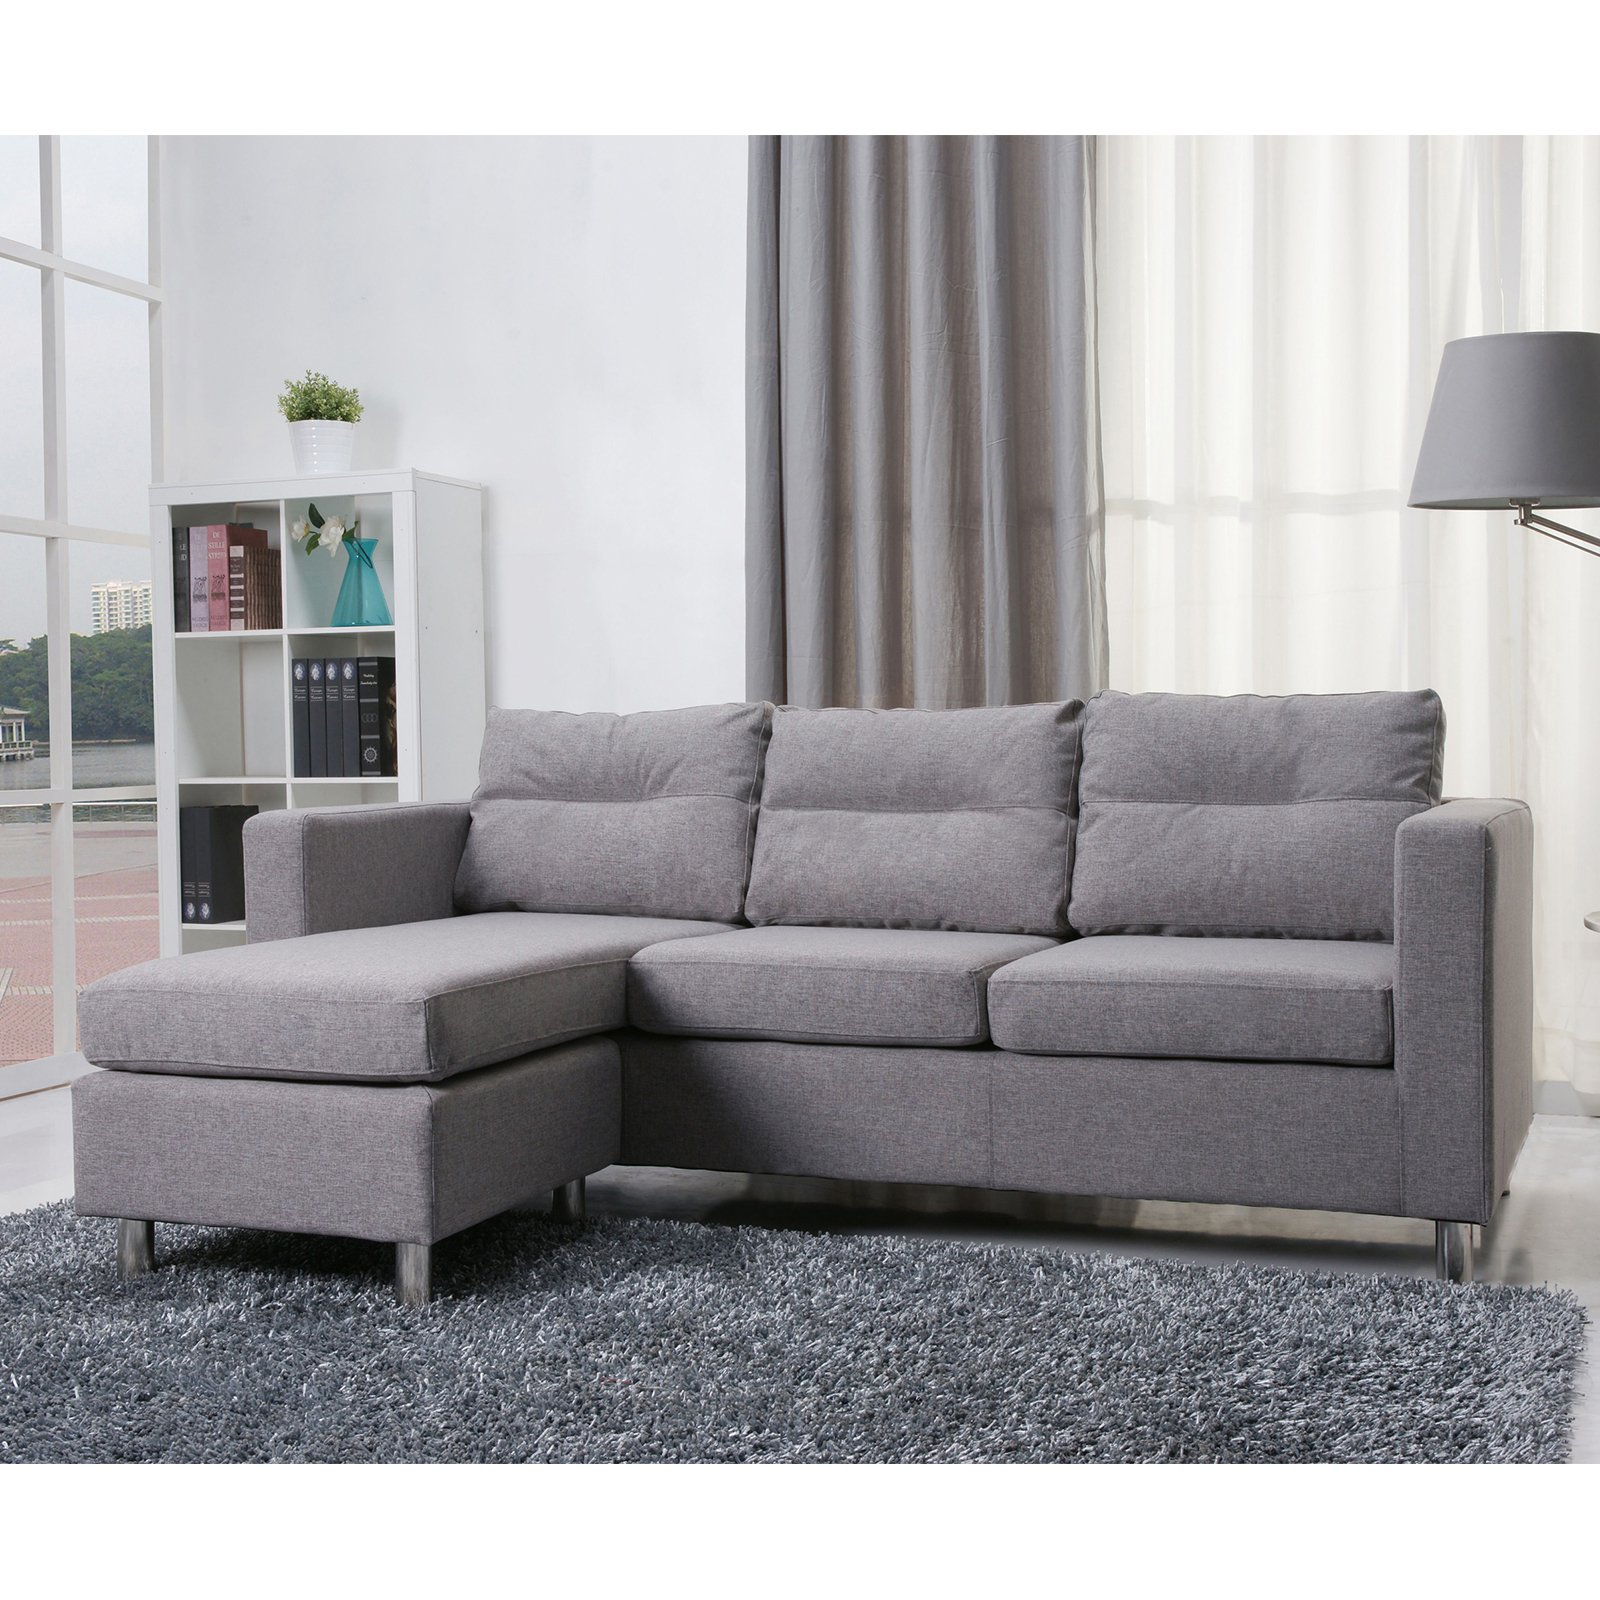 Gold Sparrow Detroit Fabric Convertible Sectional Sofa And Ottoman Set